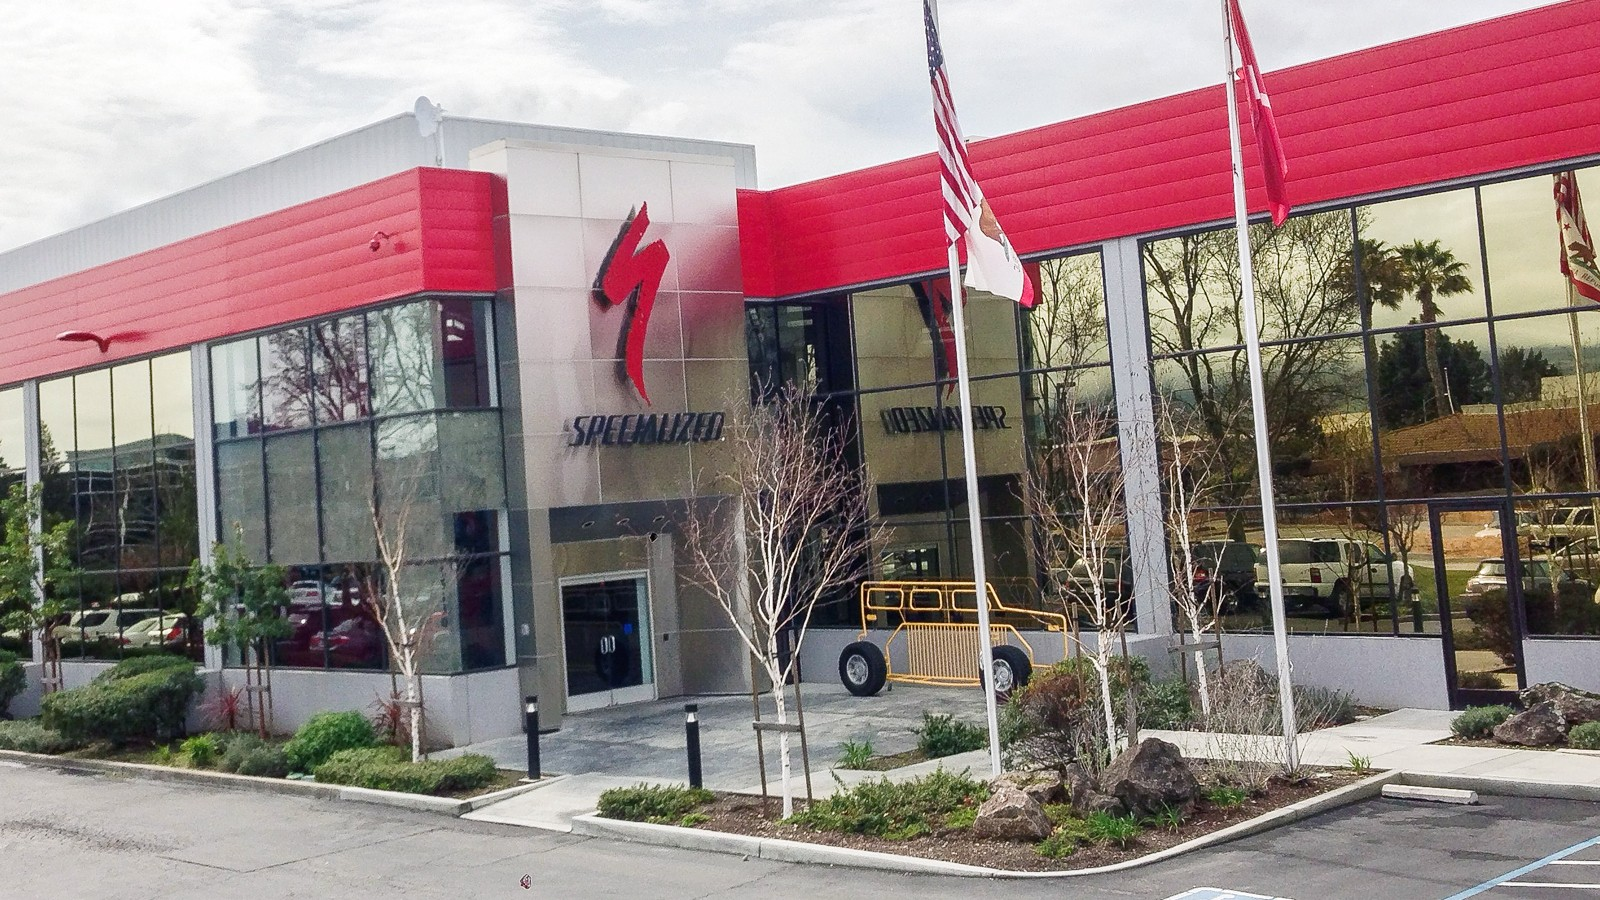 Ever wanted to take a peek inside Specialized? Follow us as we step inside...